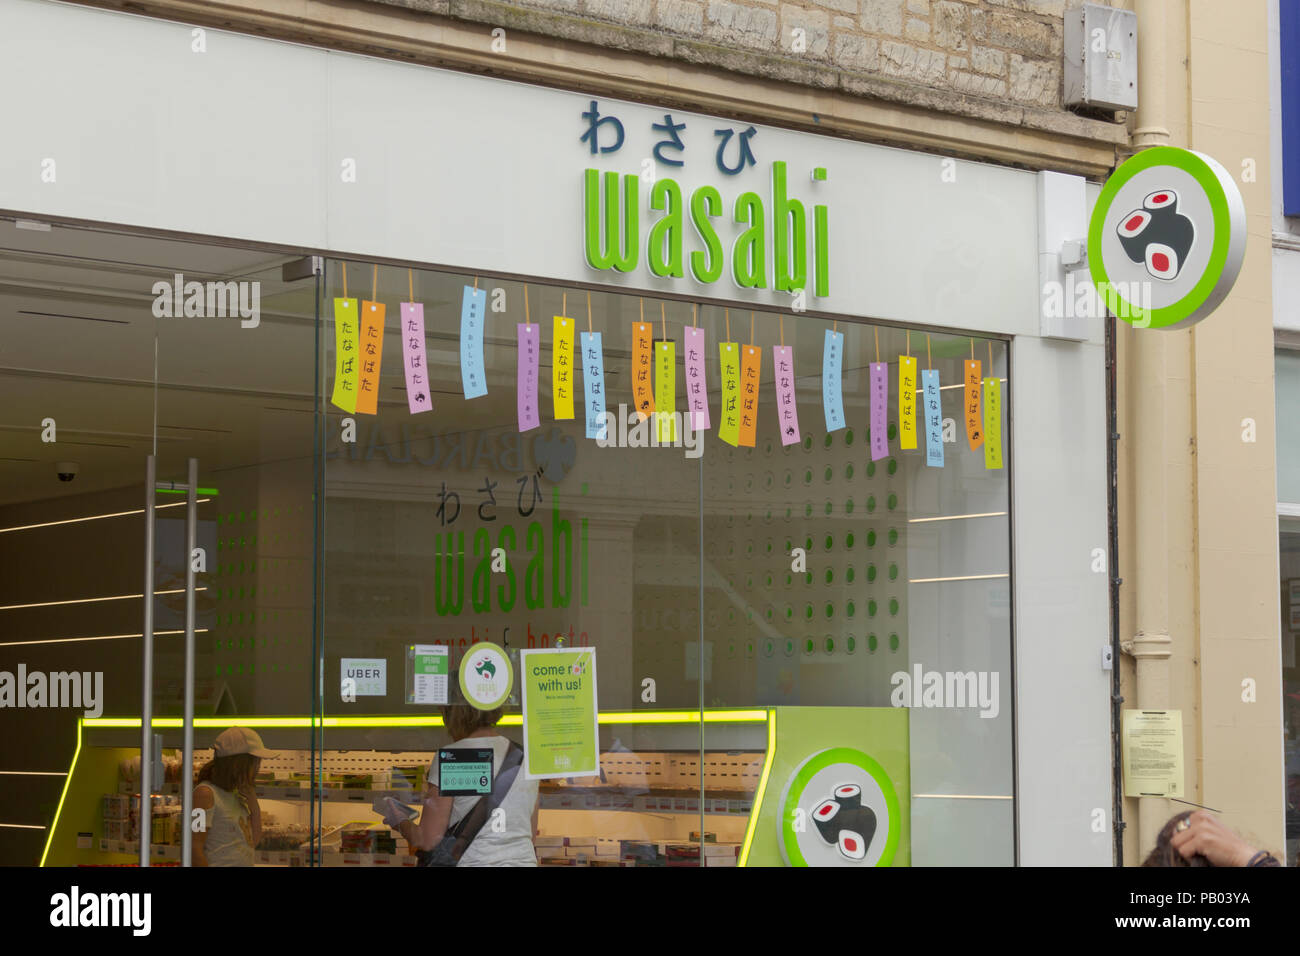 Oxford, Oxfordshire, UK. 23rd June 2018. UK Weather. Wasabi in picturesque Oxford. - Stock Image